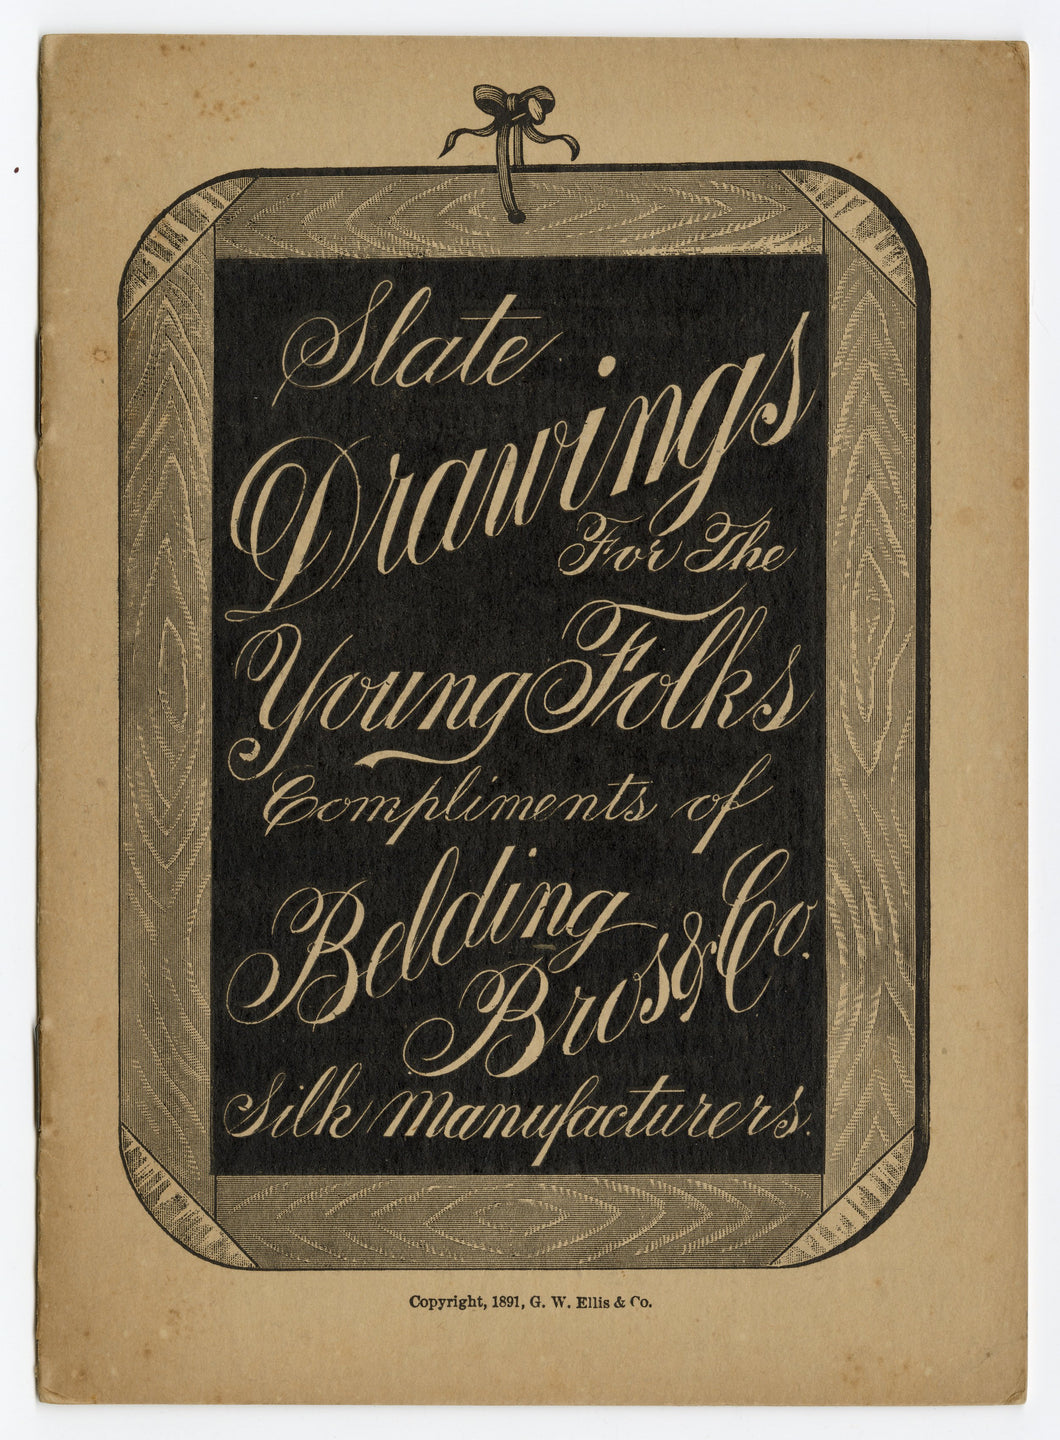 1891 Slate Drawing Promotional Booklet, Belding Bros. & Co. Silk Manufacturers